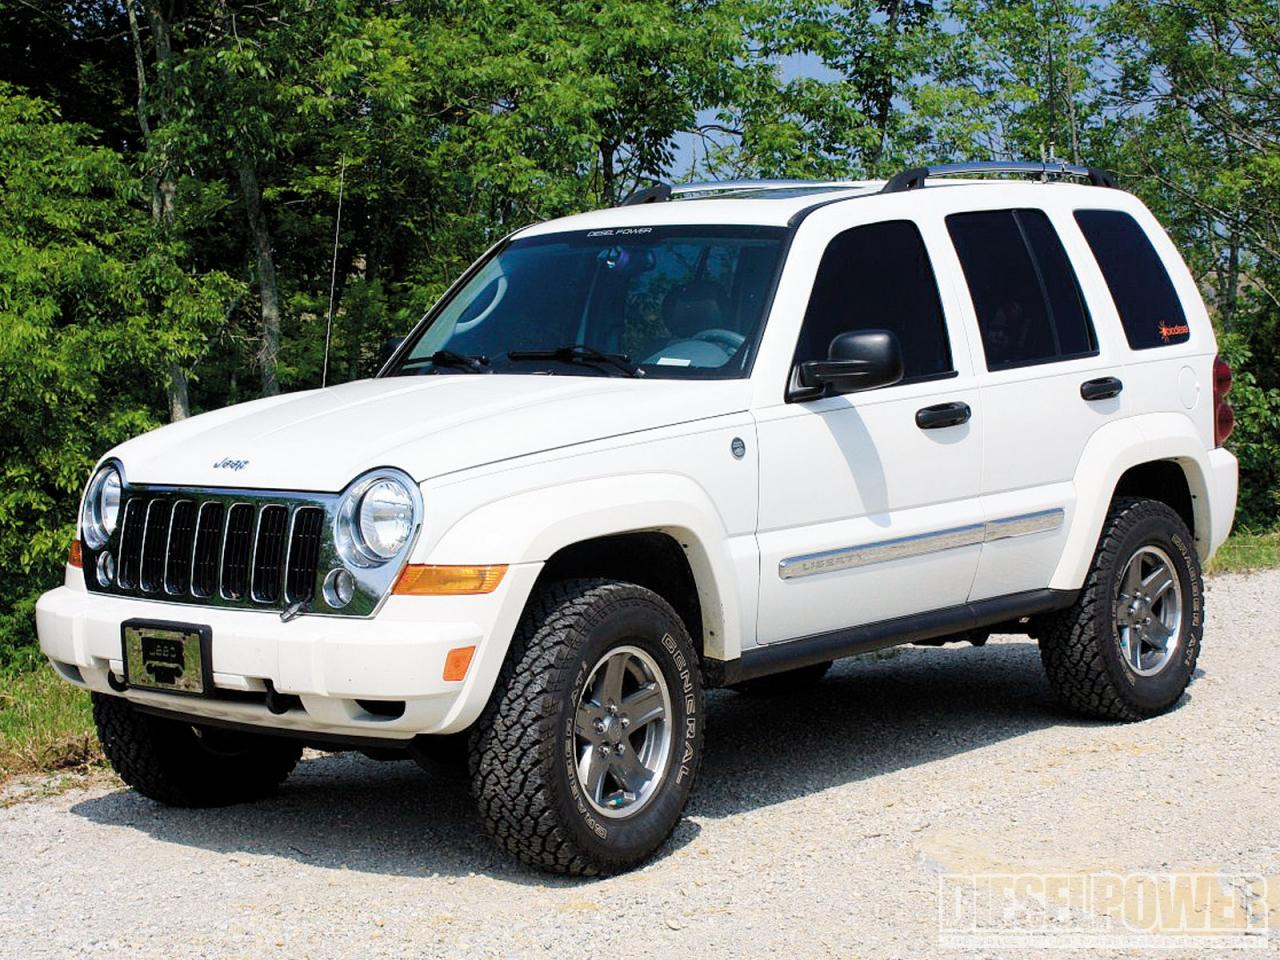 2005 Jeep Liberty Information And Photos Zombiedrive Sport 10 800 1024 1280 1600